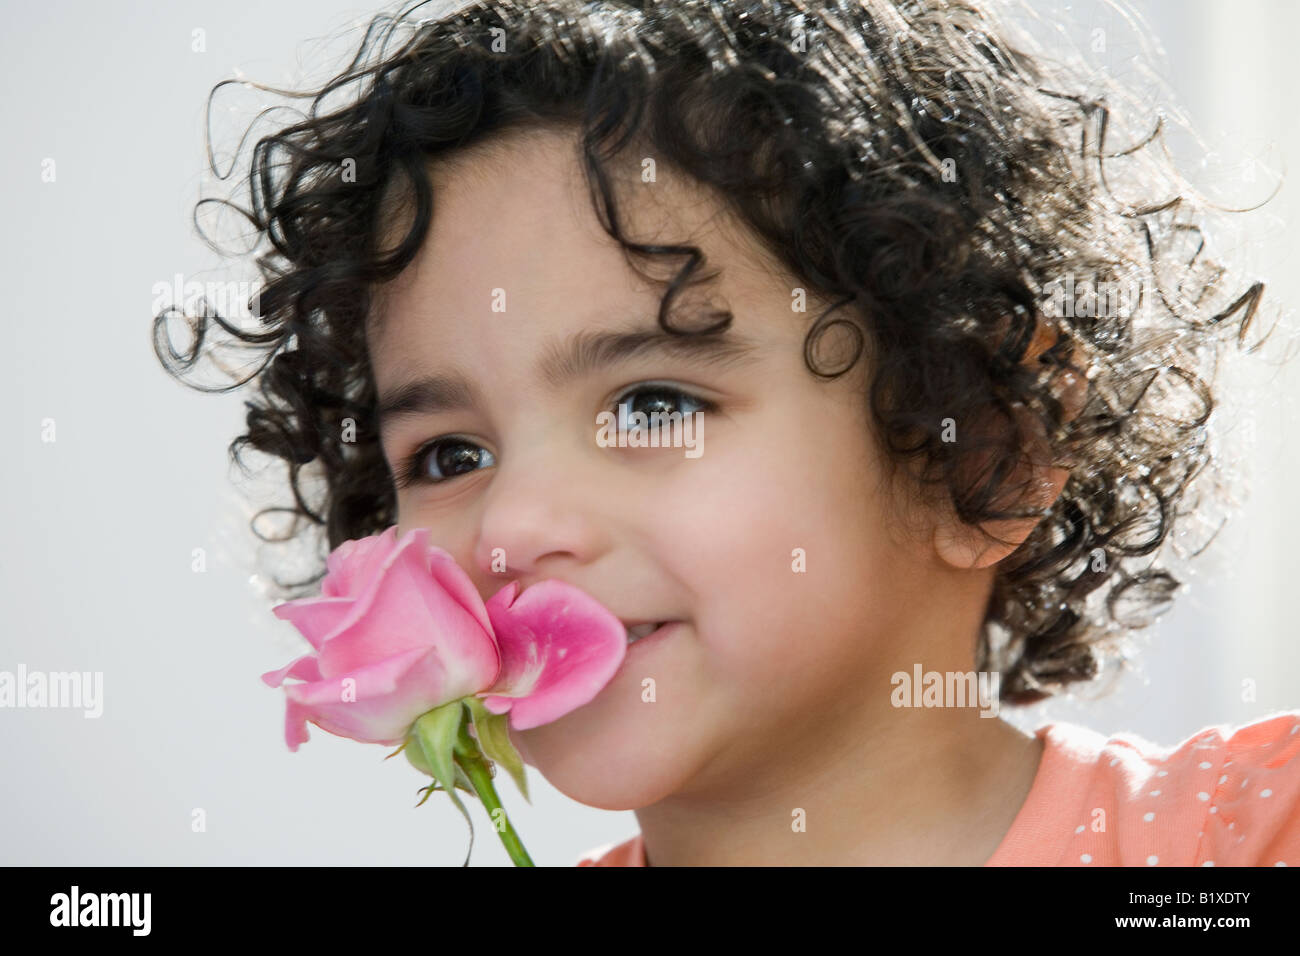 Close-up of a girl smelling a rose - Stock Image